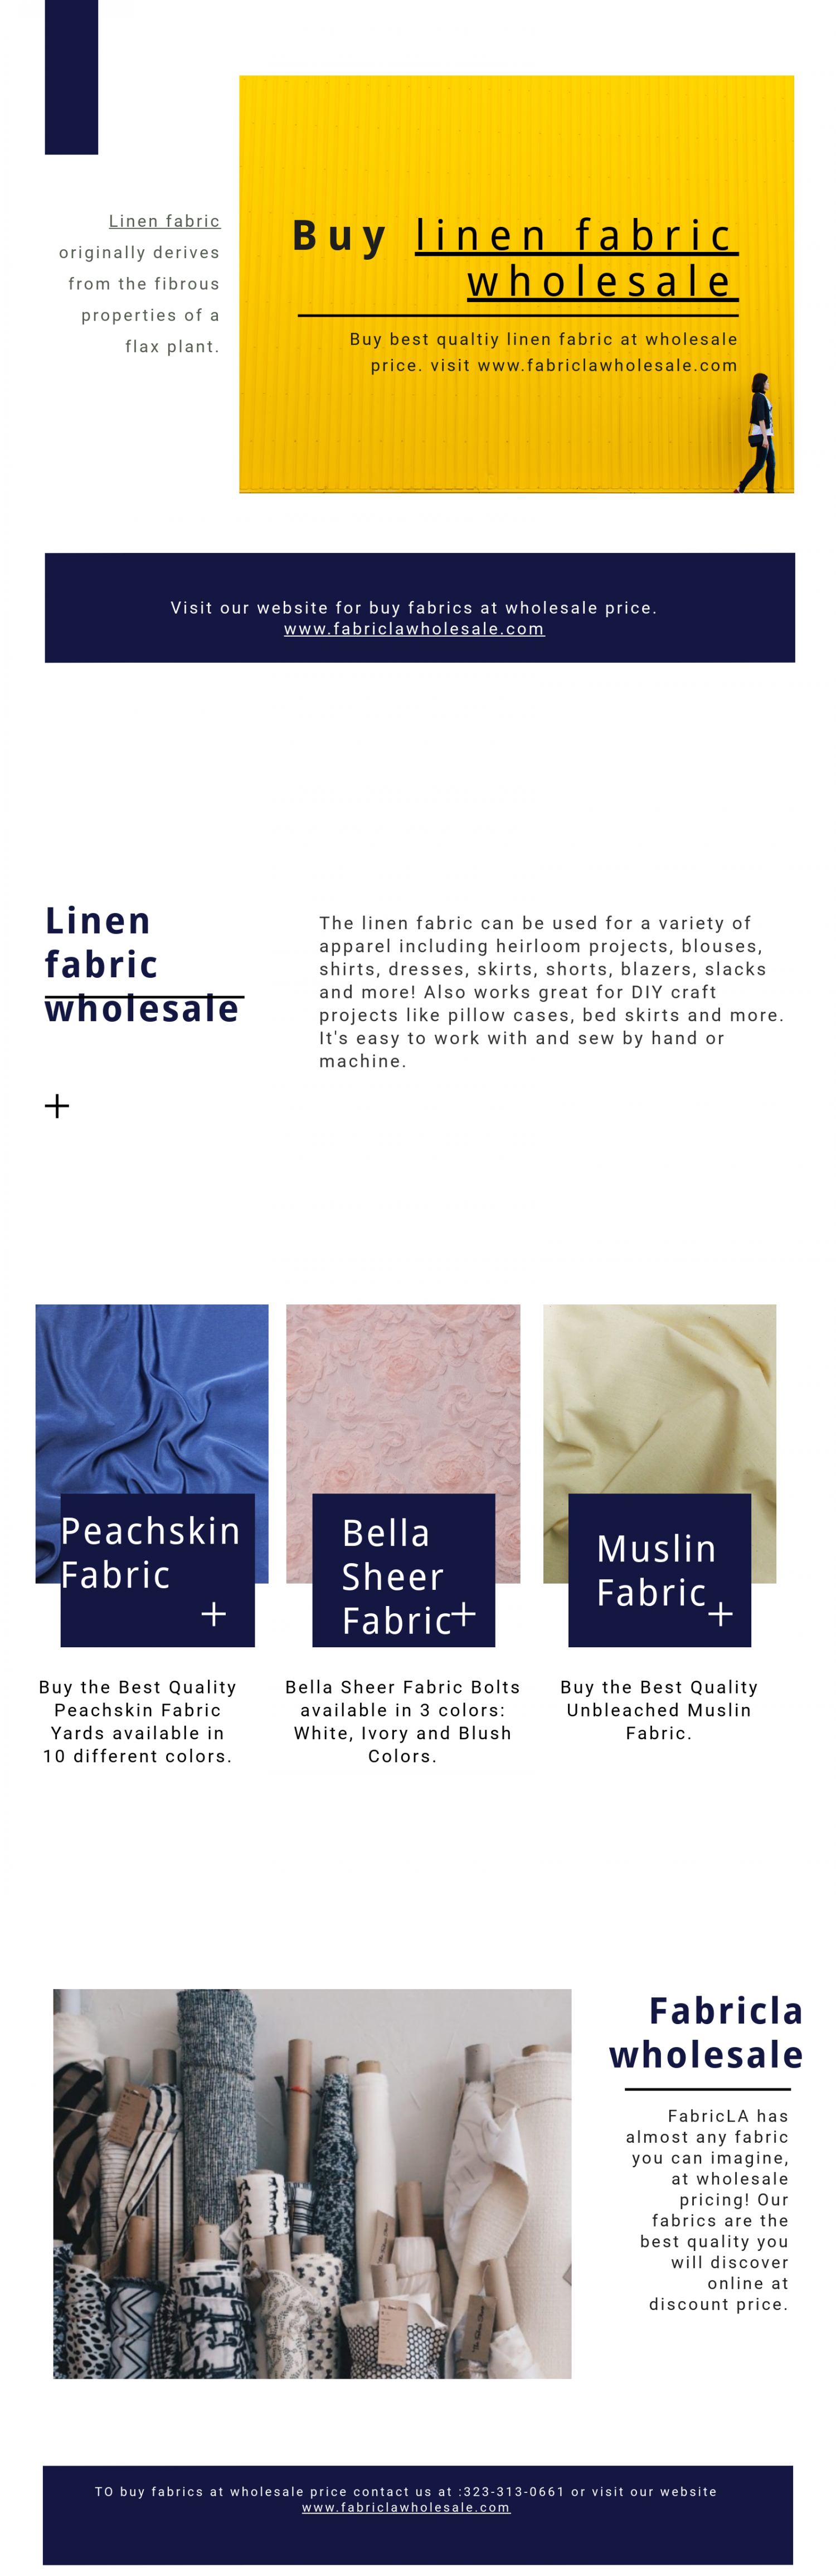 Linen fabirc at wholesale price. Infographic